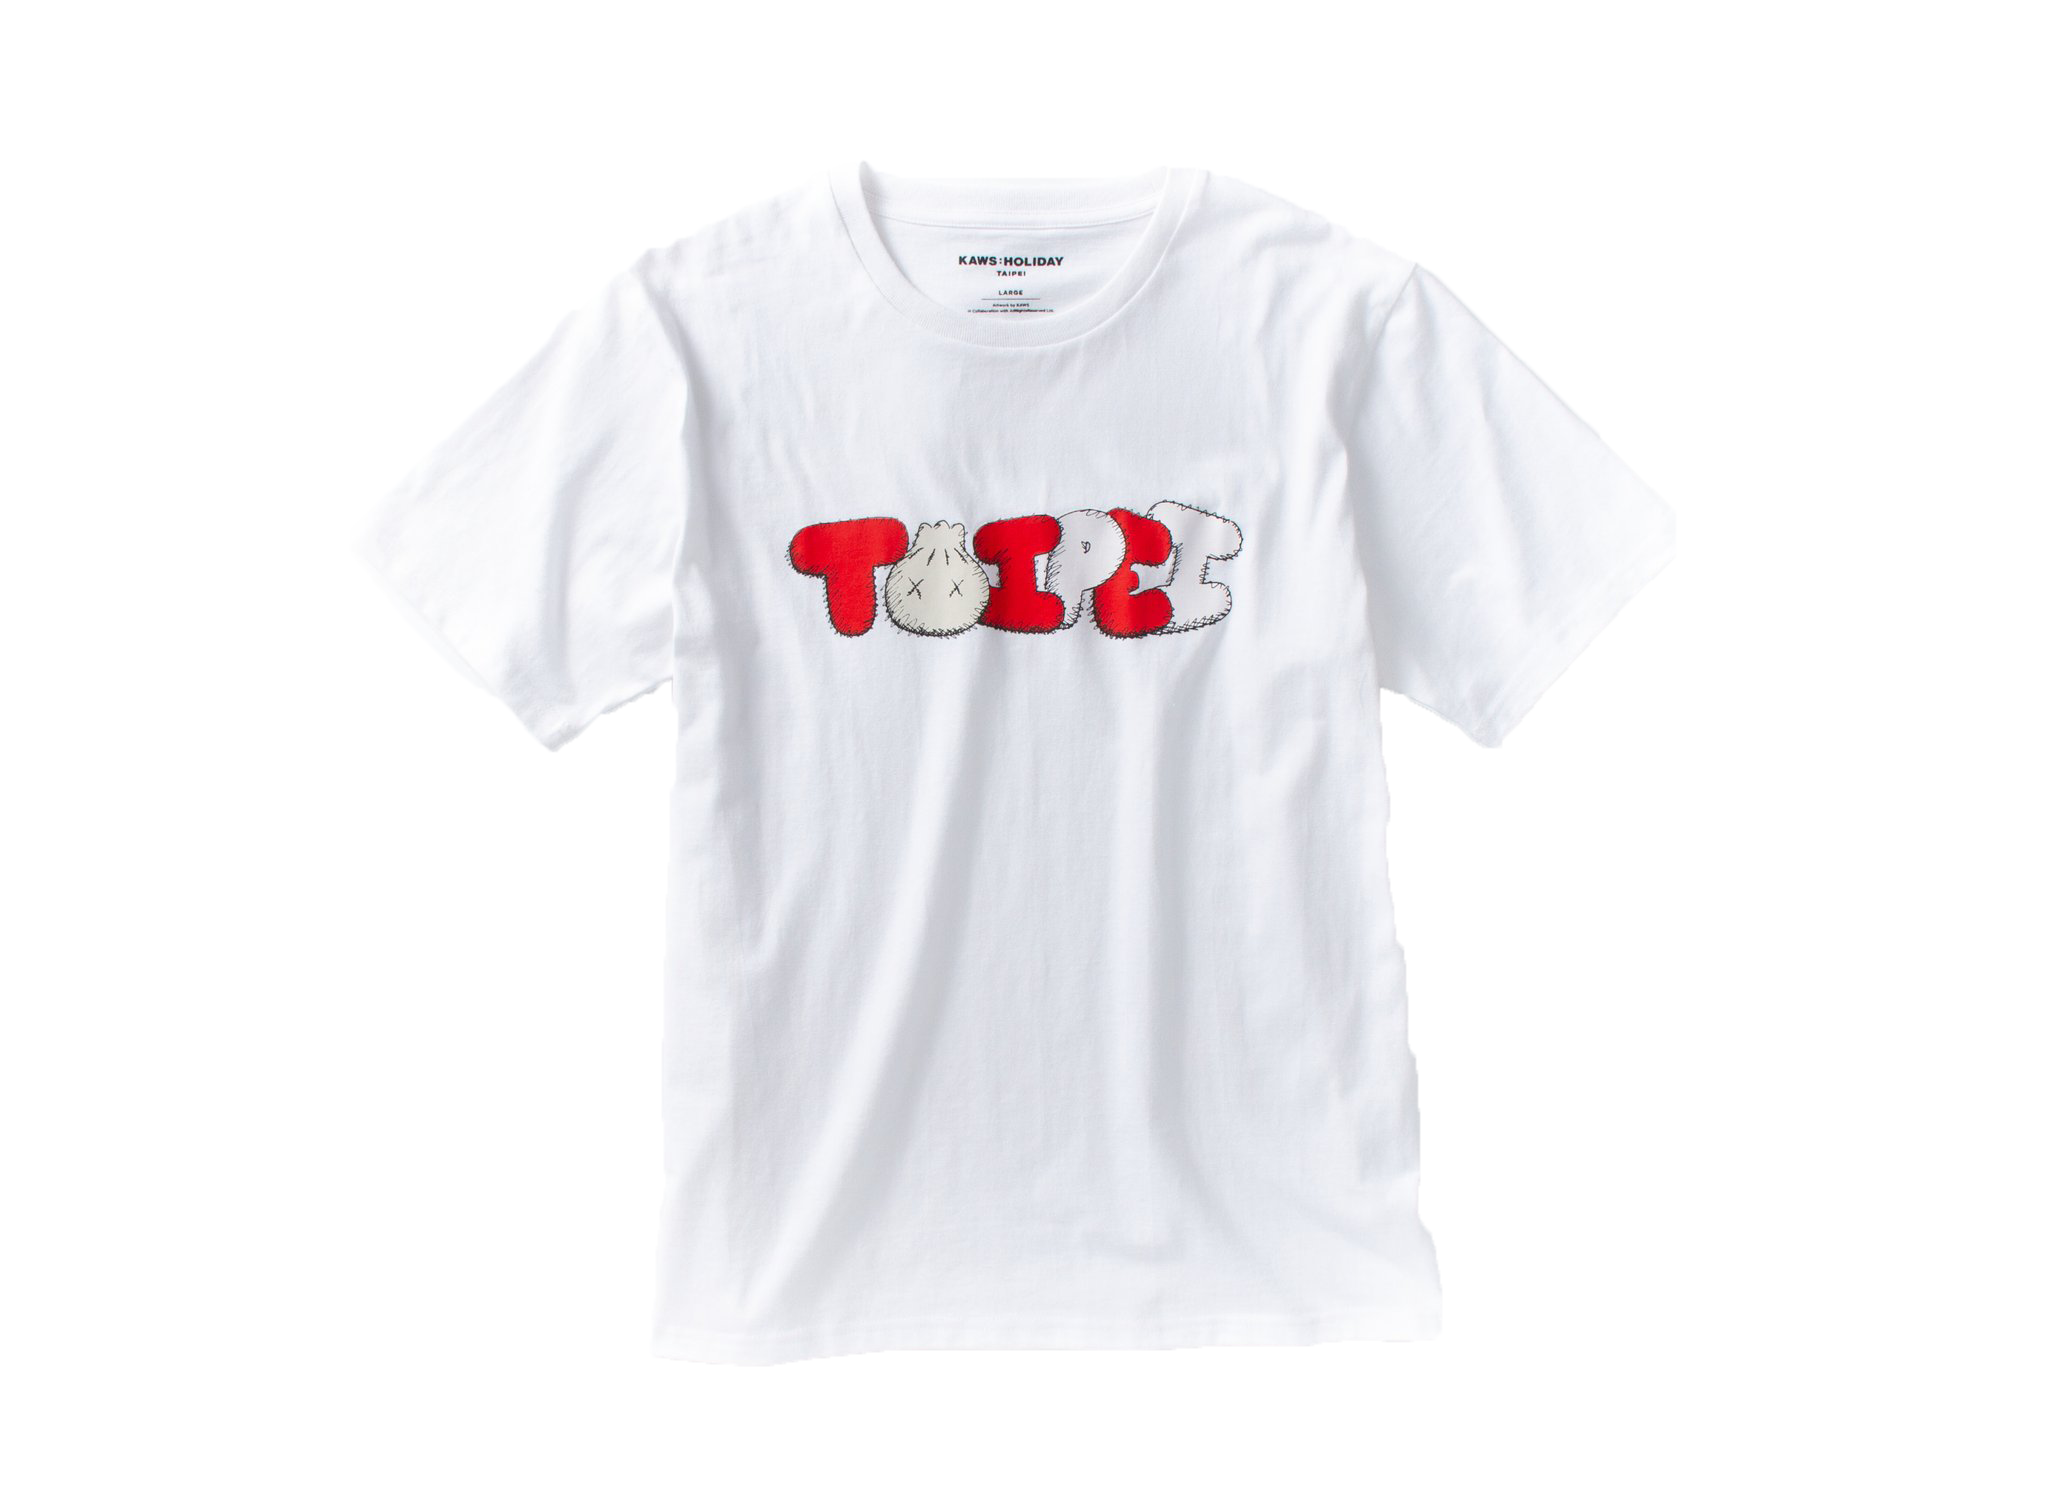 Kaws Holiday Limited Taipei T-Shirt White